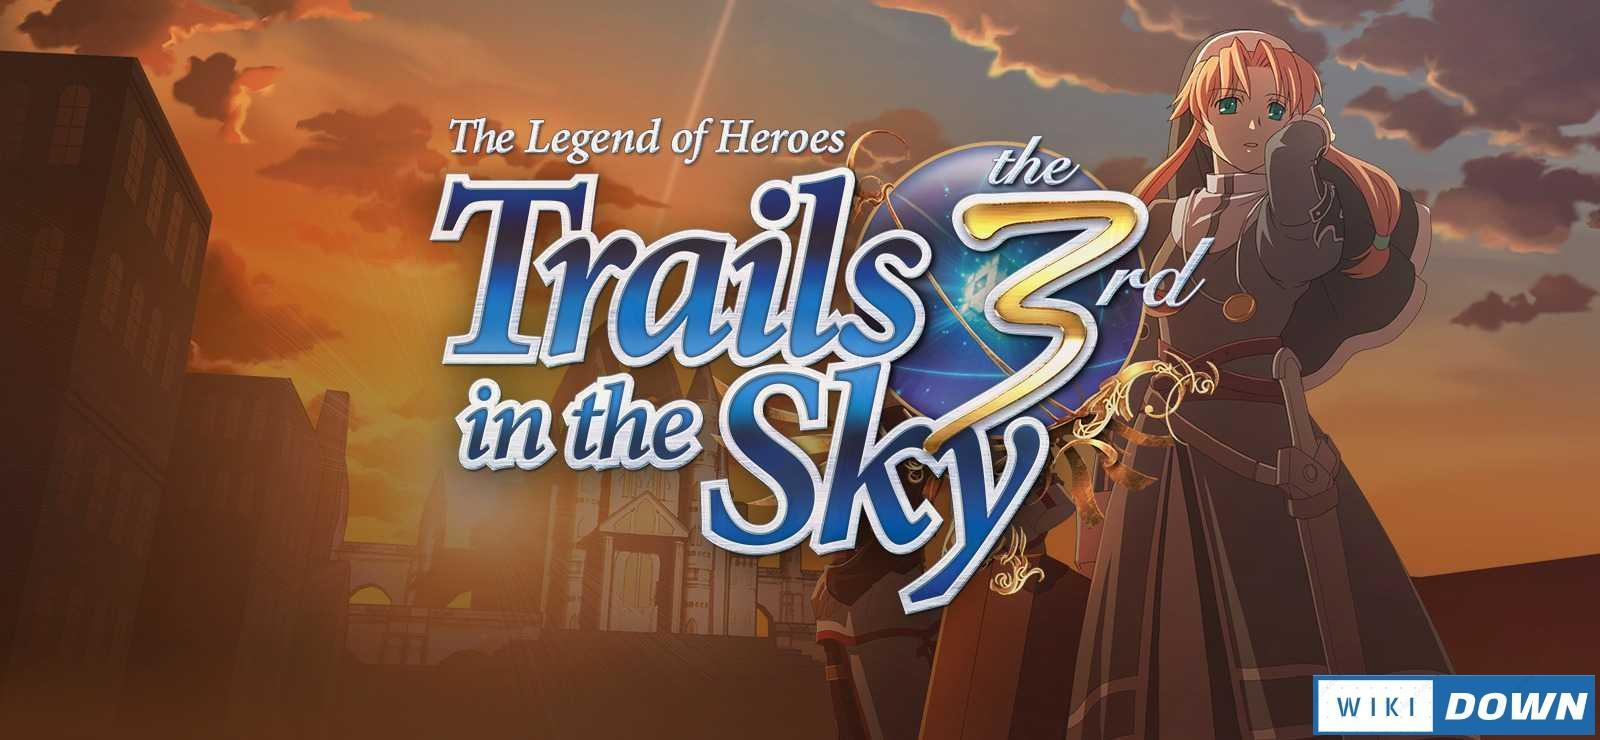 Download The Legend of Heroes Trails in the Sky the 3rd Mới Nhất